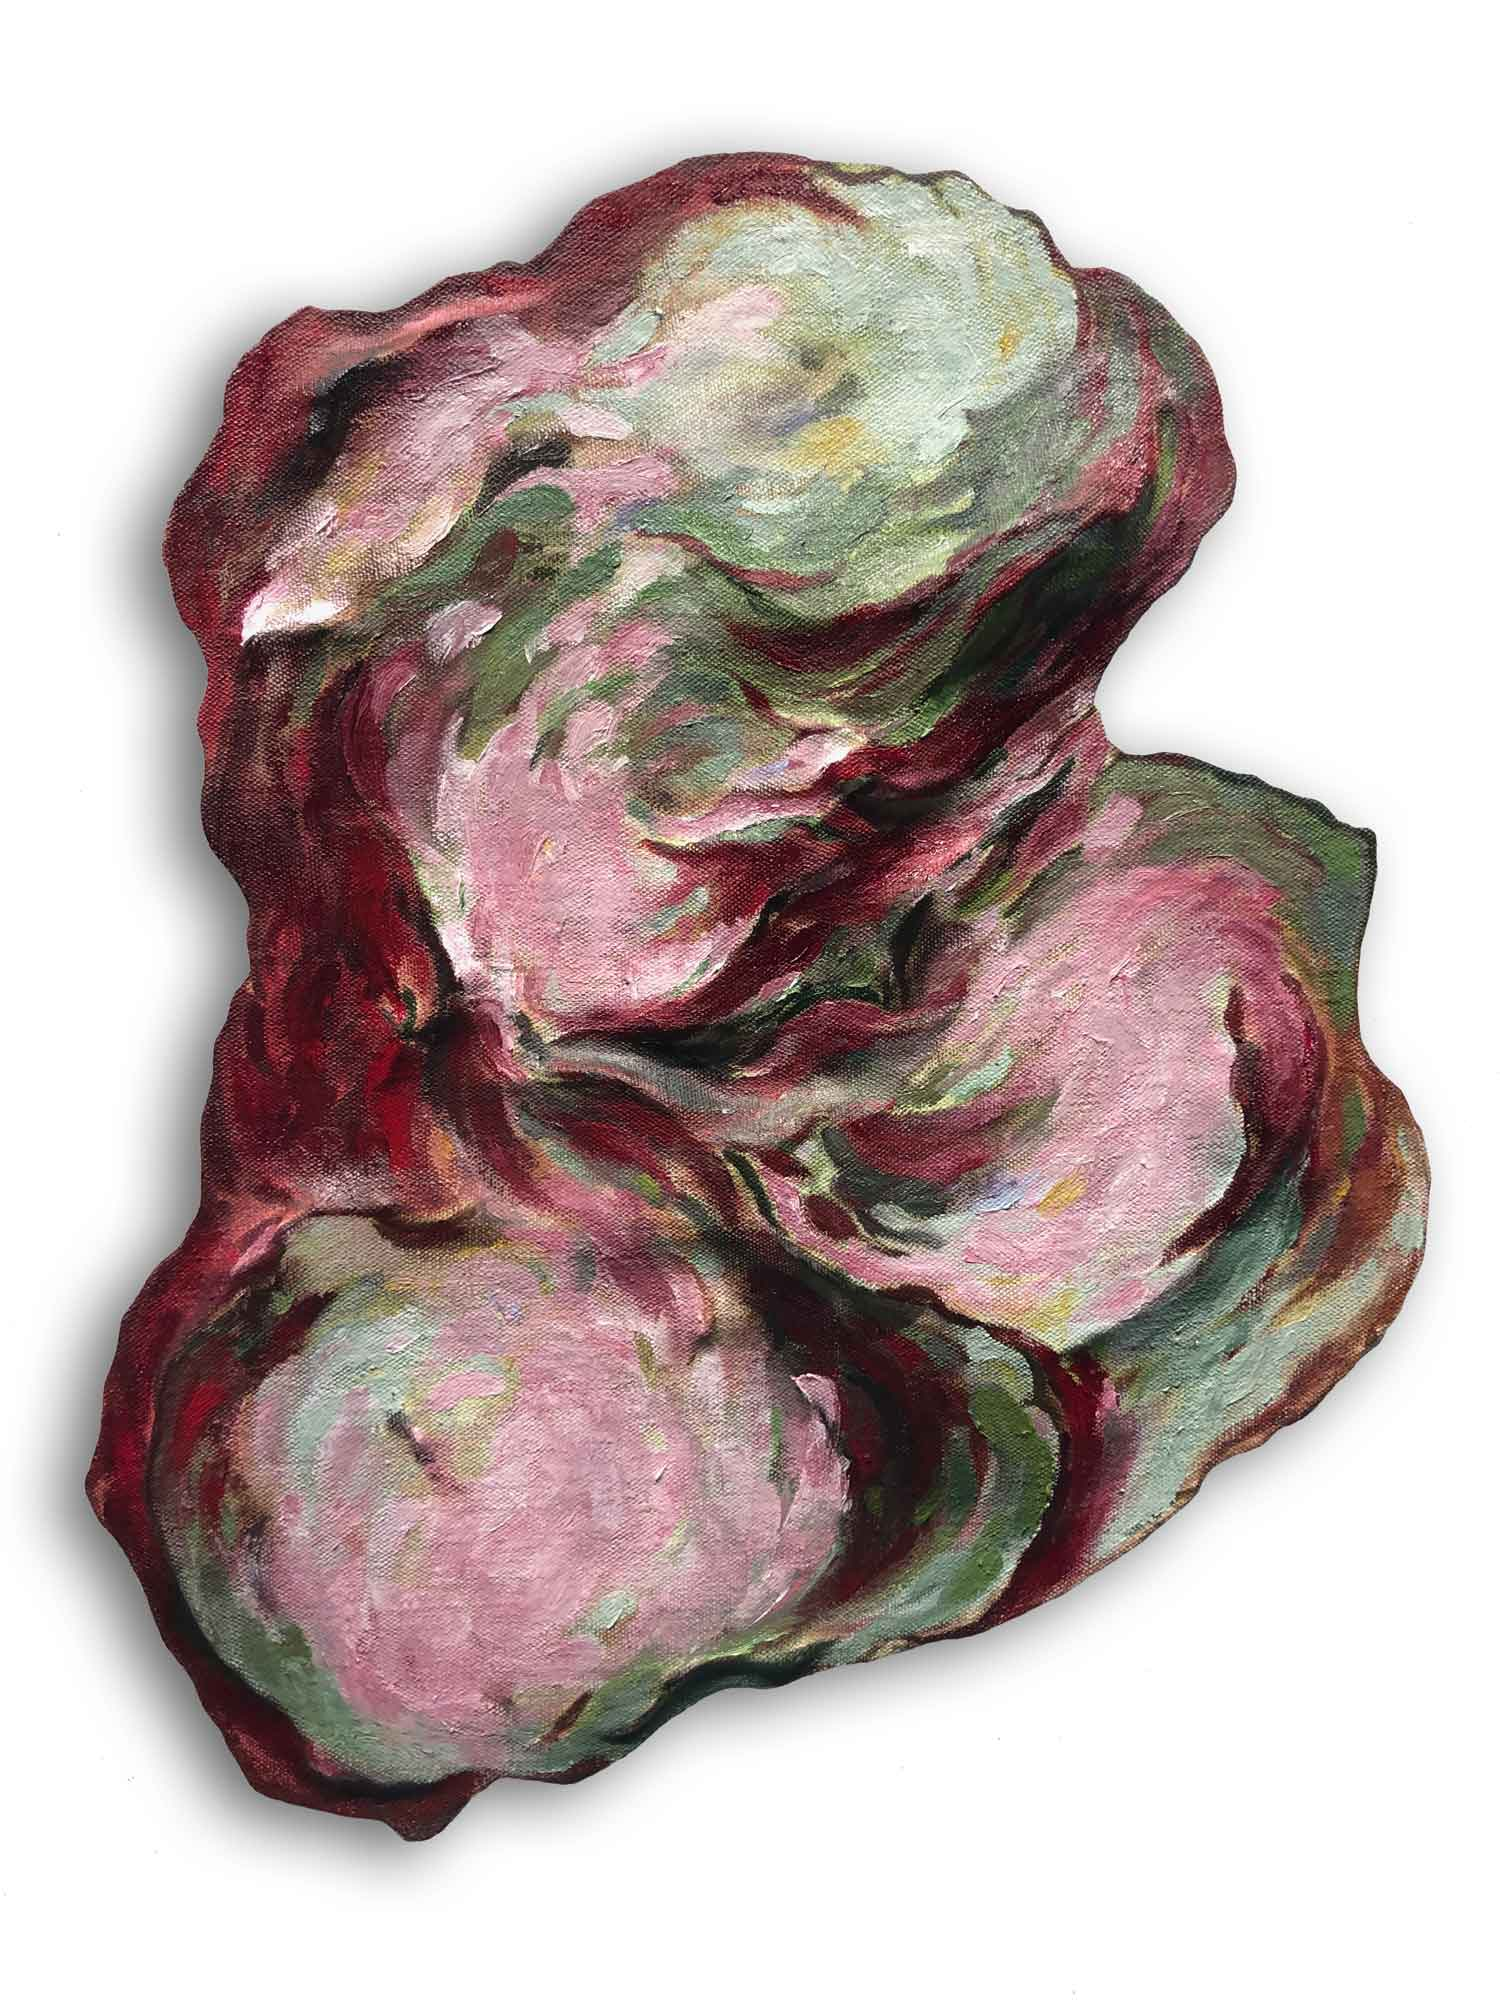 Untitled (Paeony)